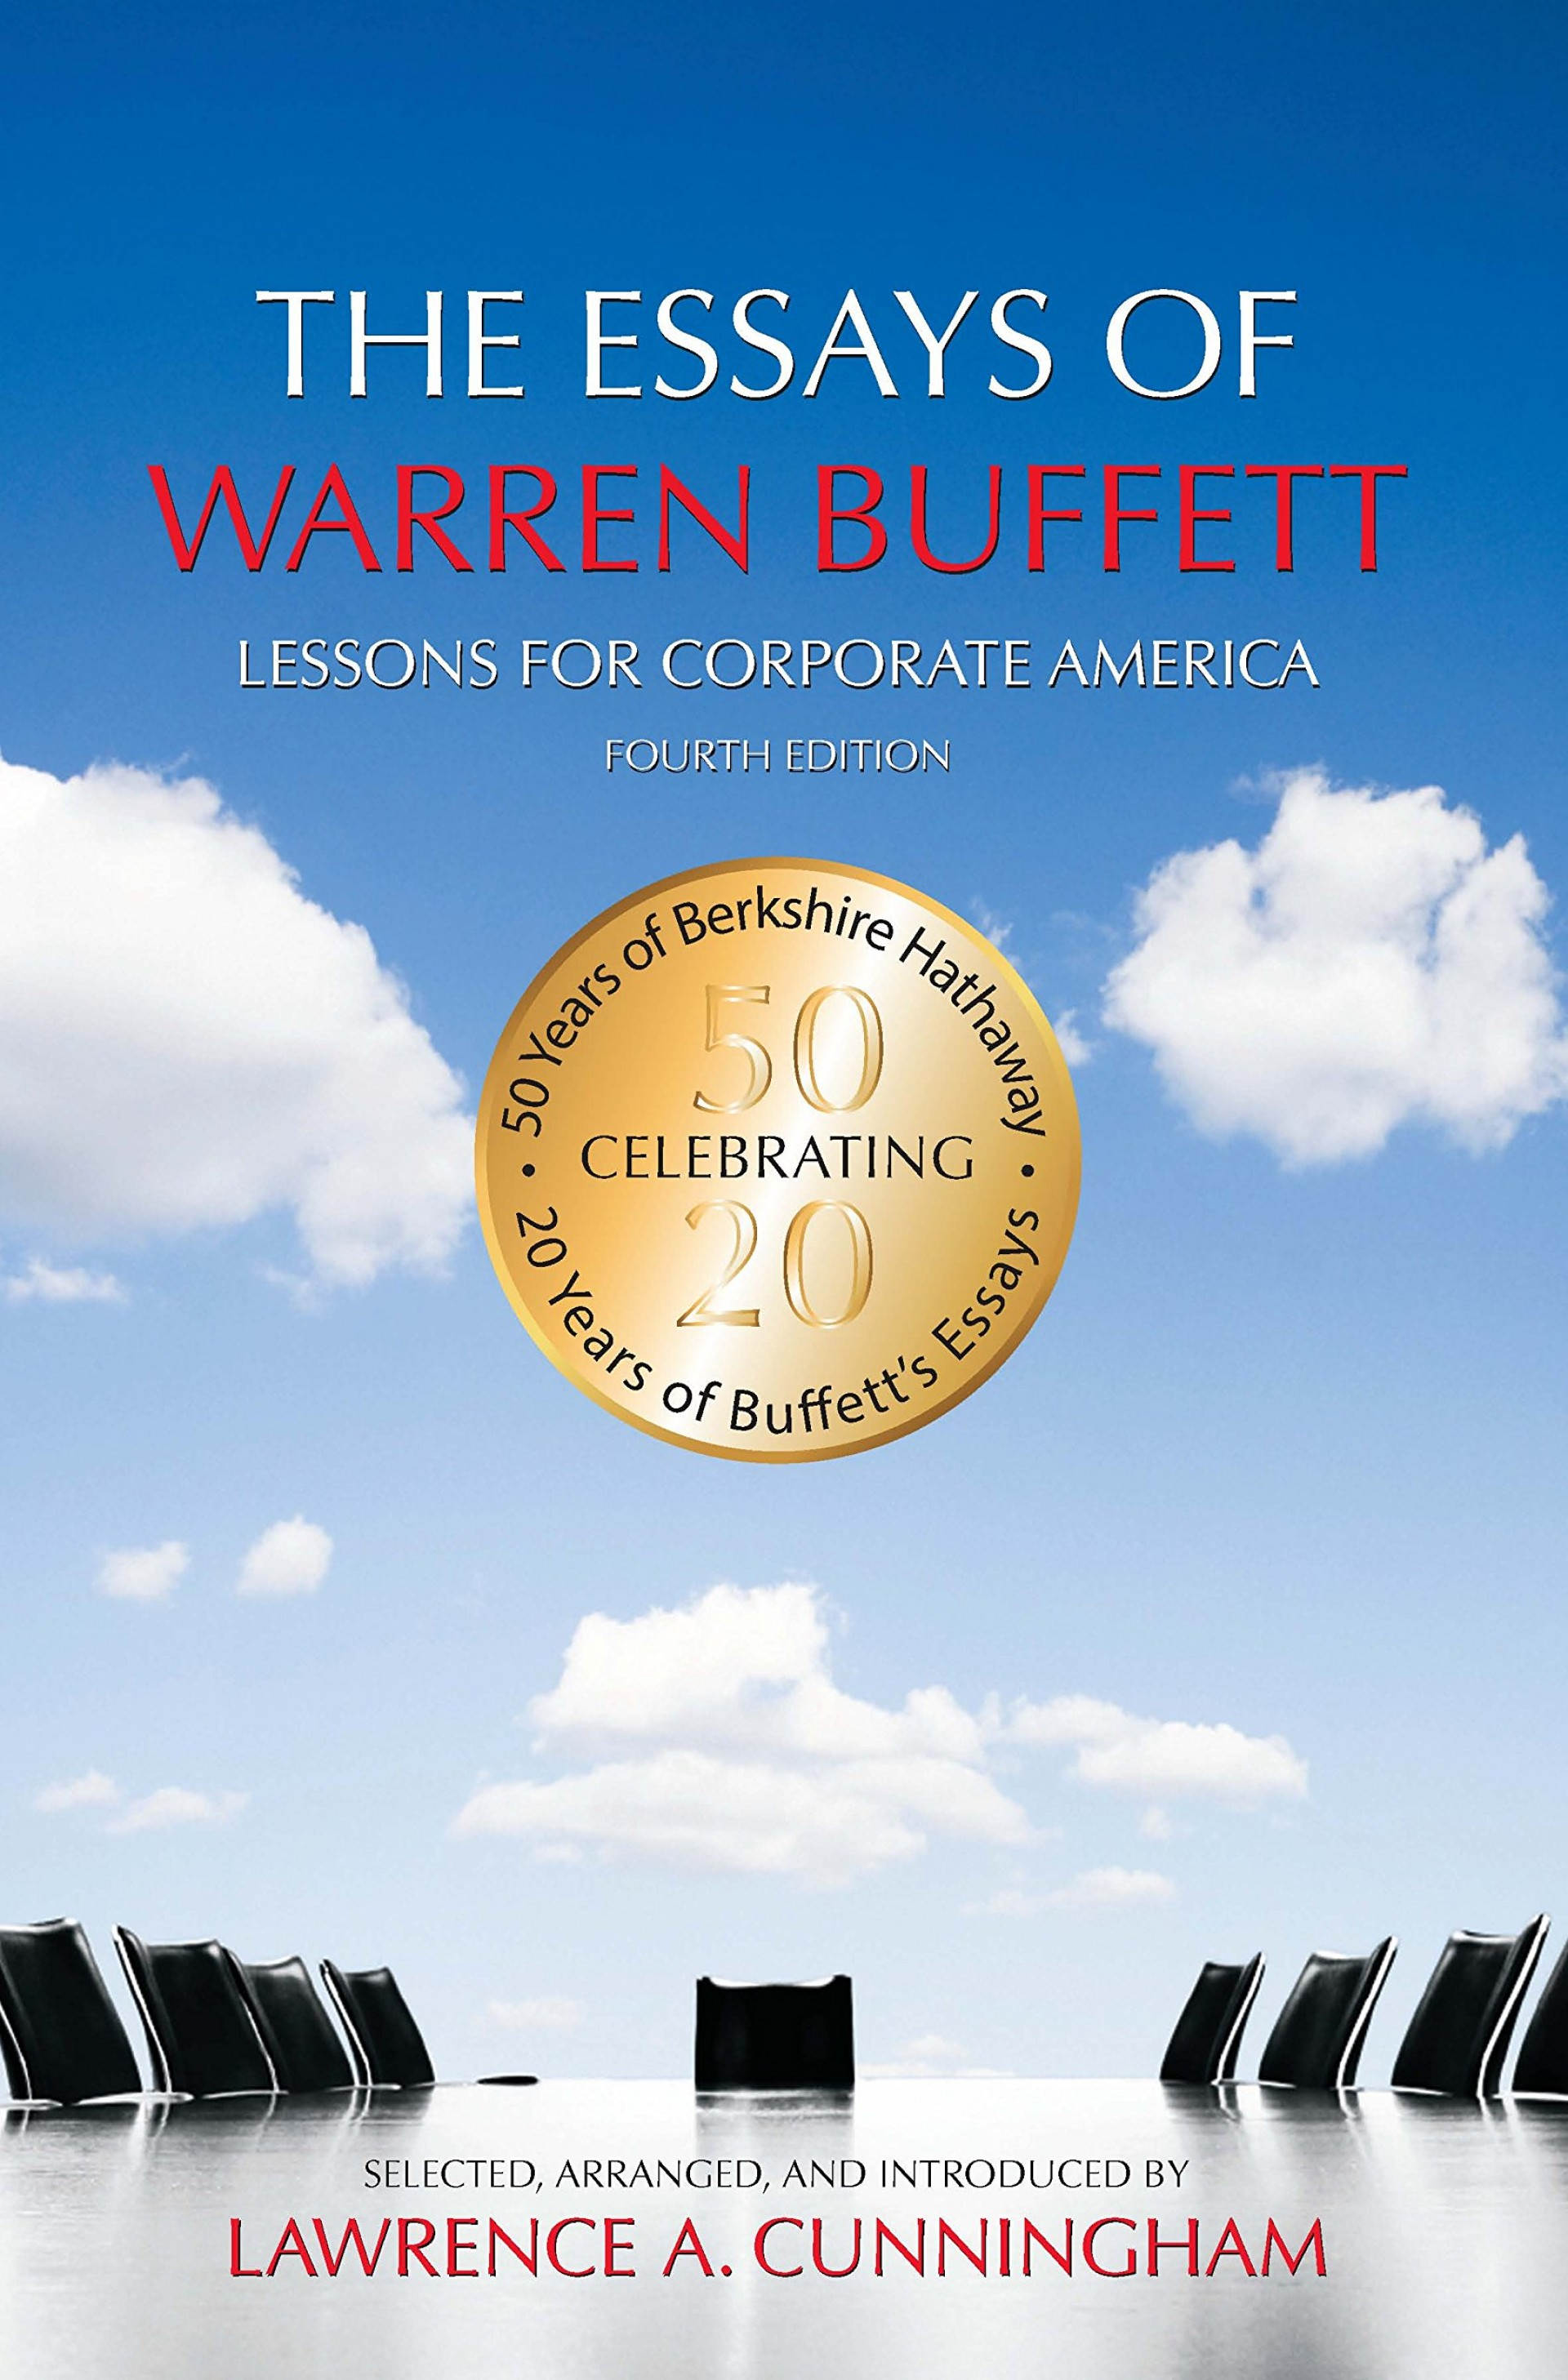 001 81wiv2brymel Essays Of Warren Buffett Essay Top 4th Edition The Pdf Free 1920